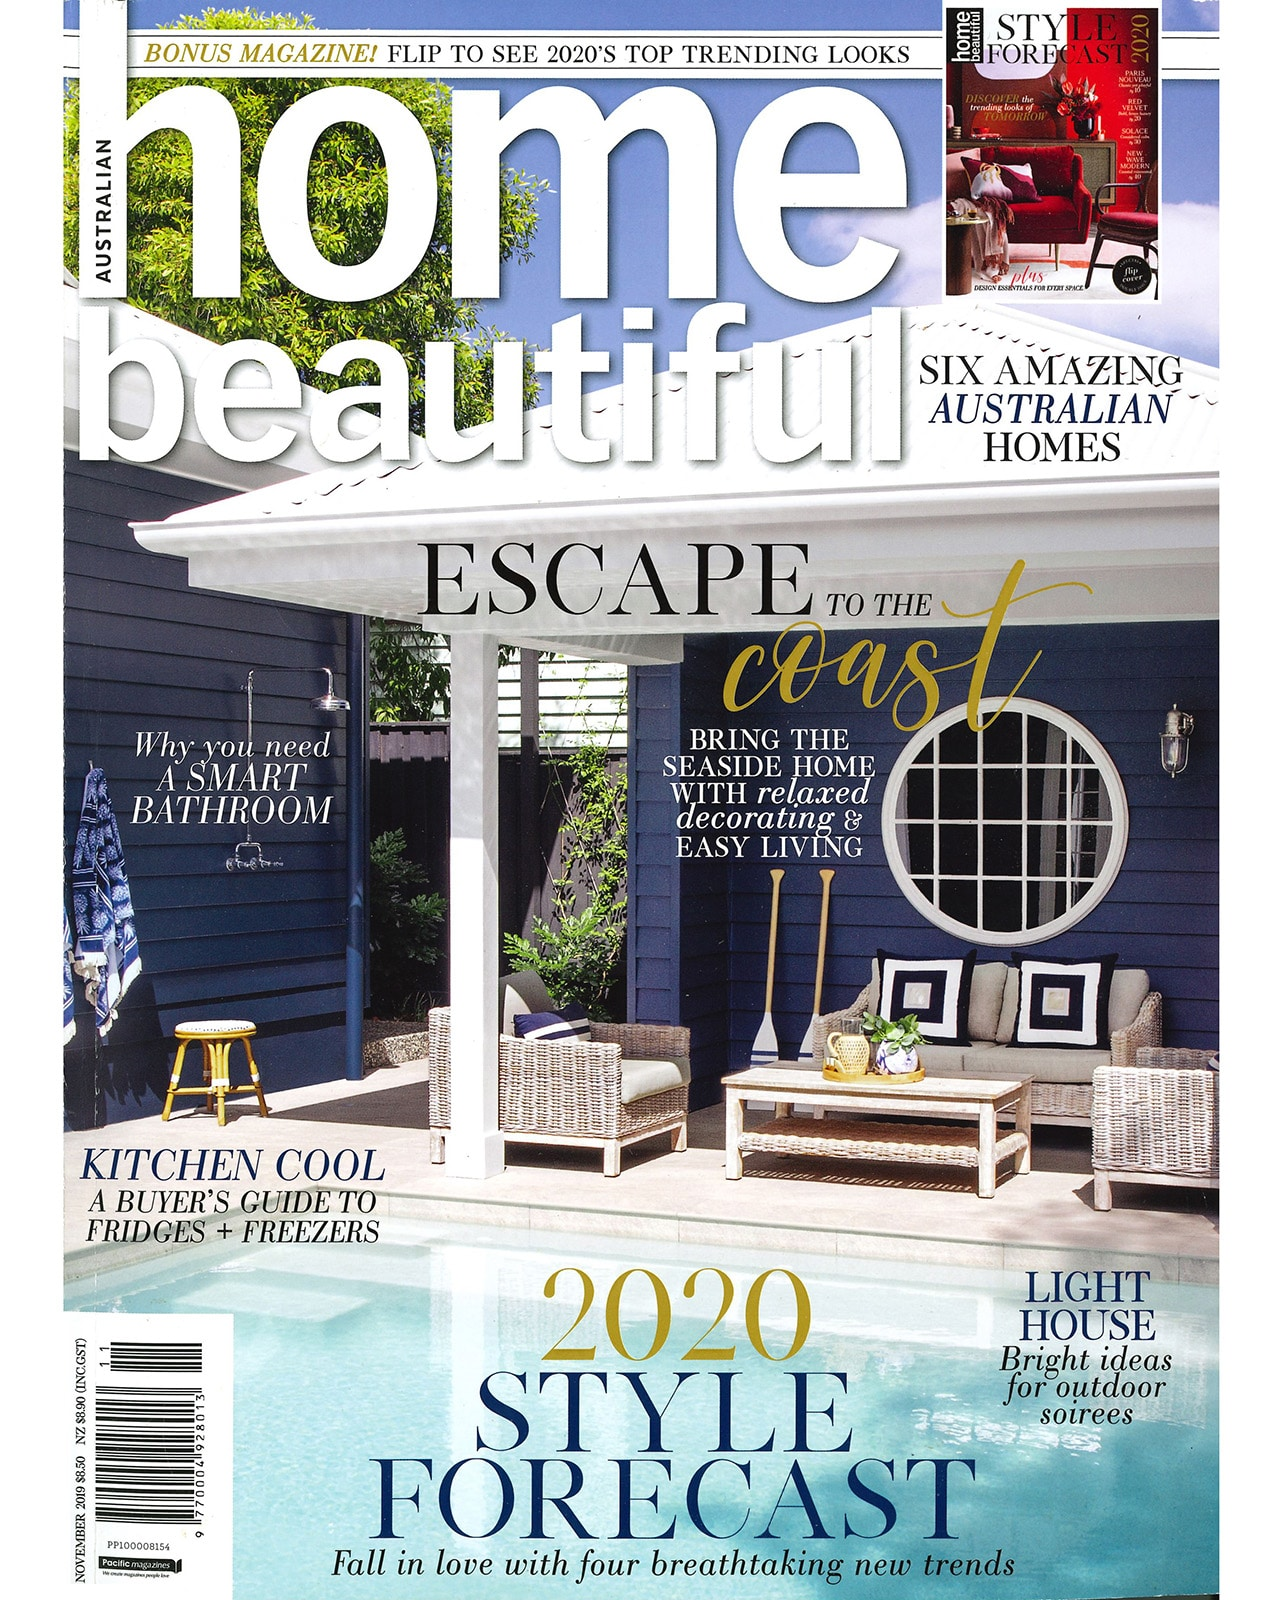 Studio Black Interiors featured in Home Beautiful Magazine.